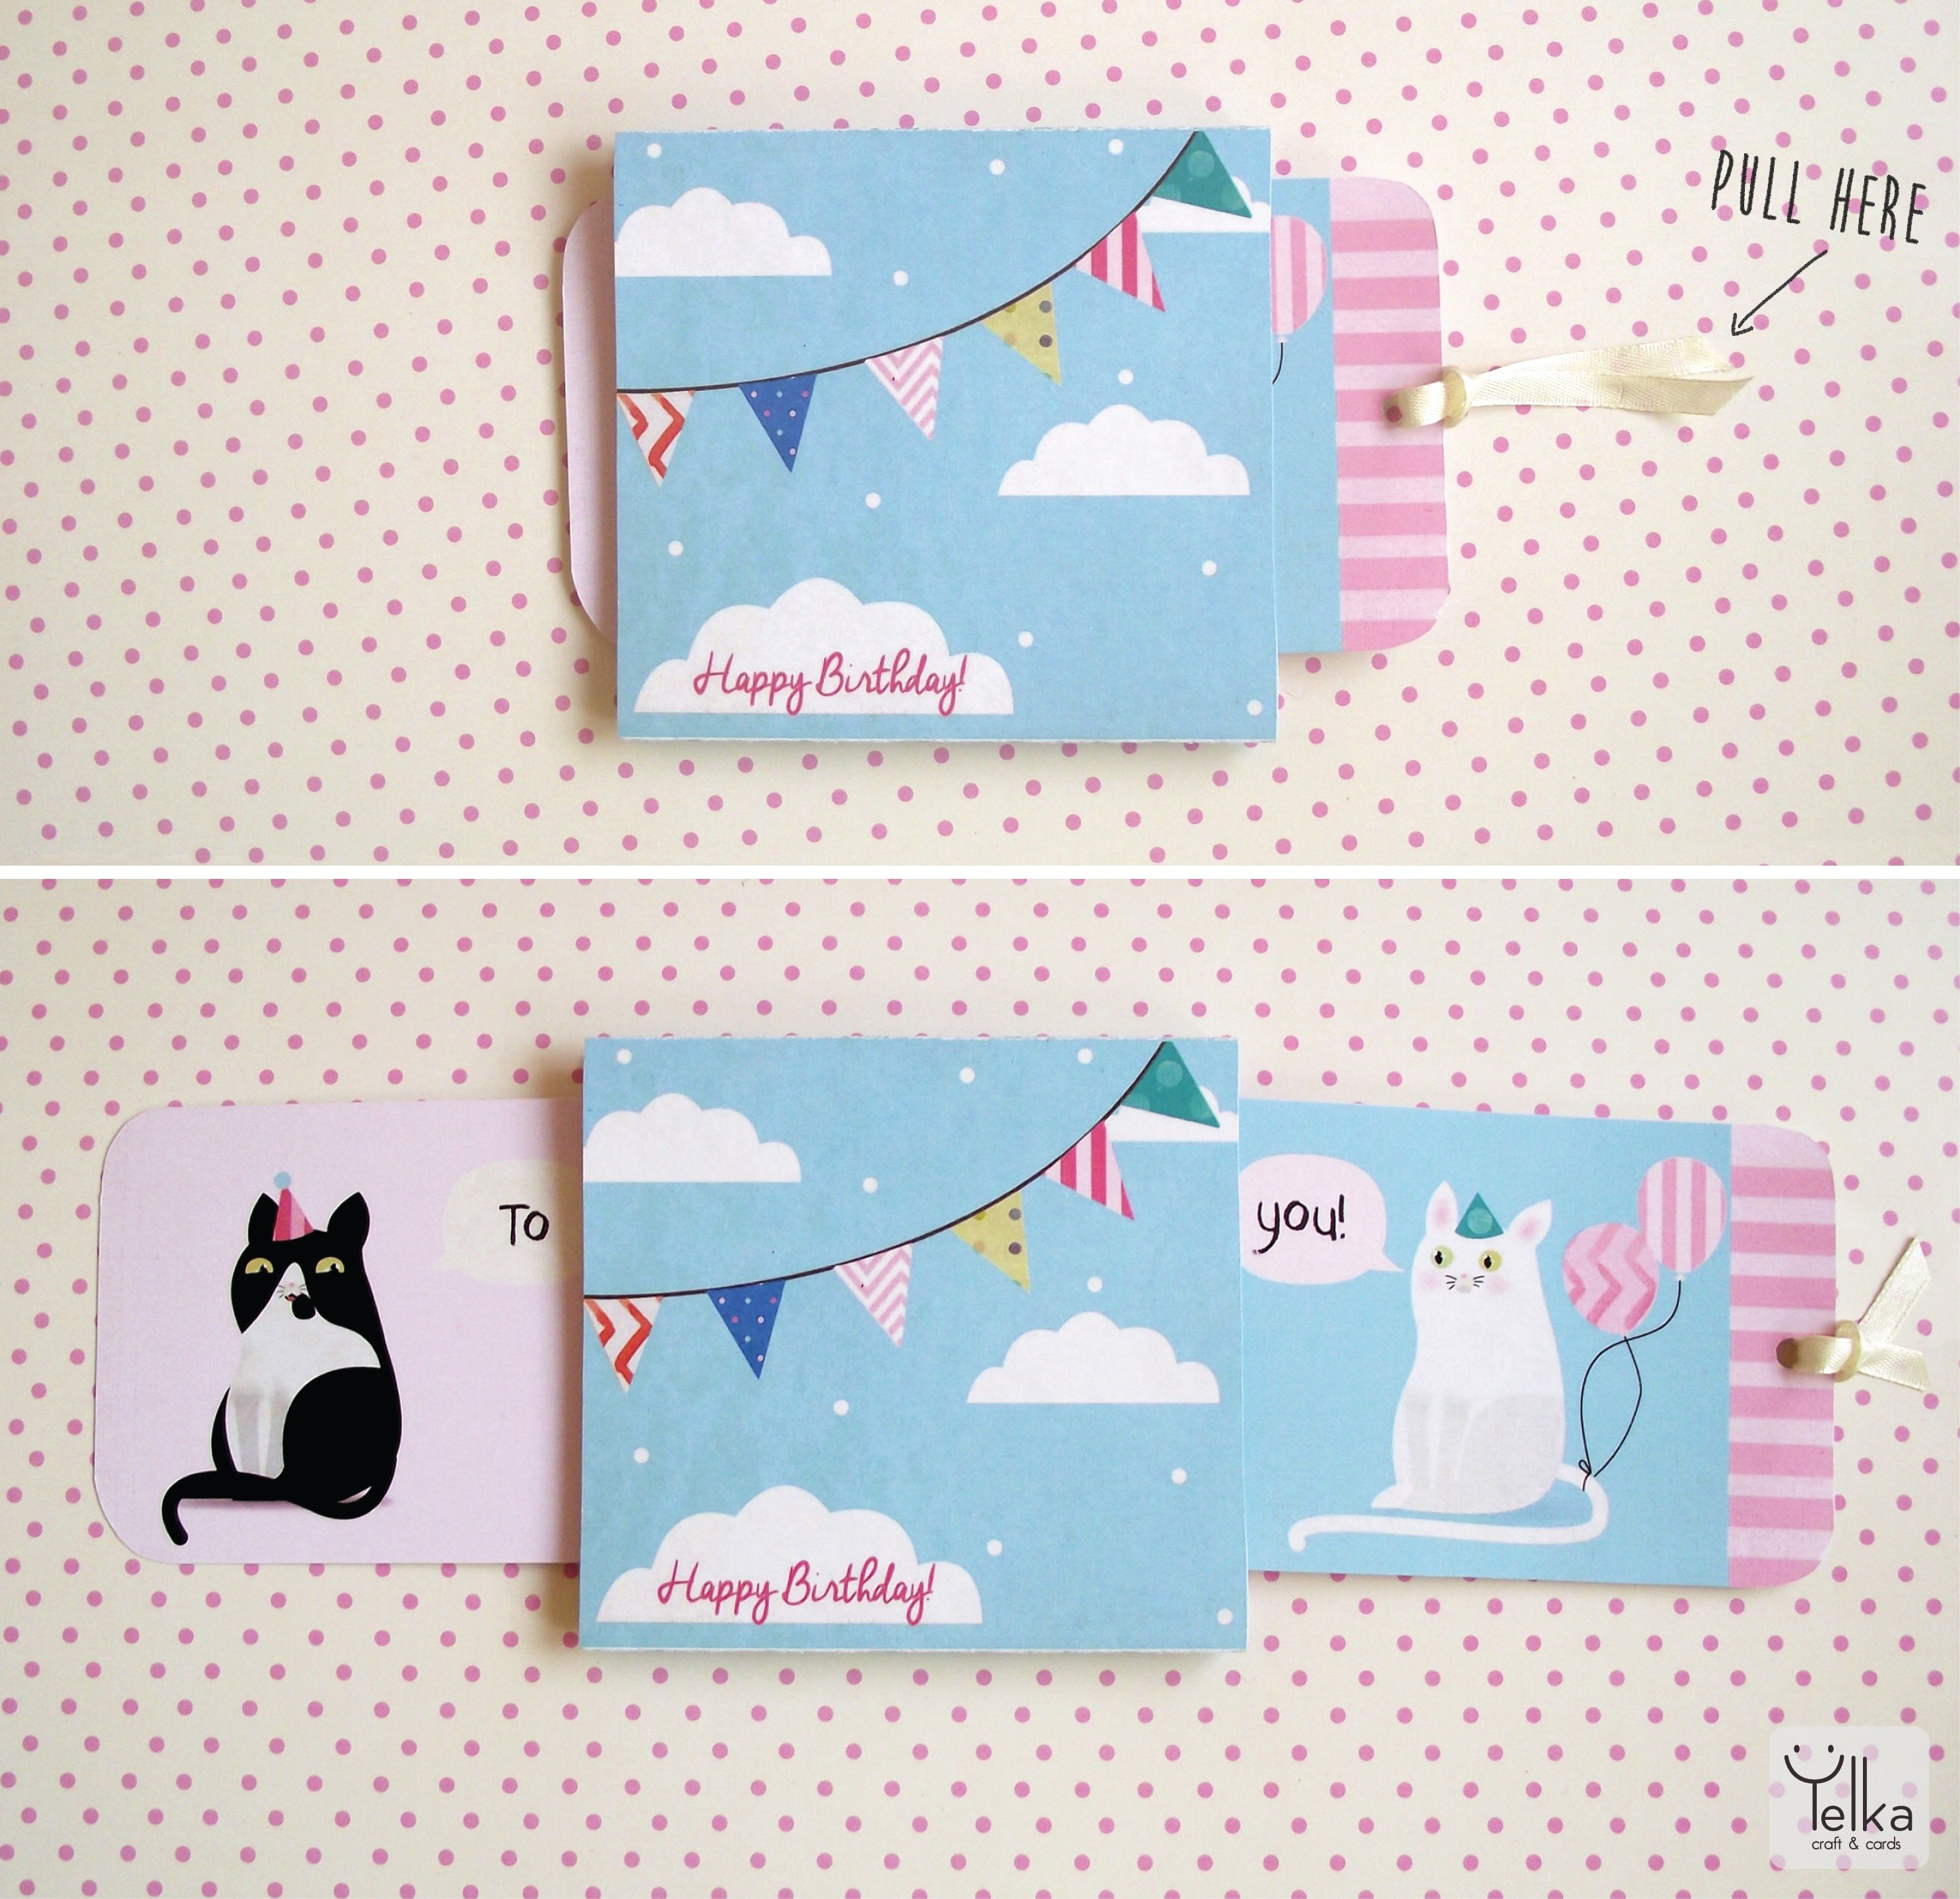 Push And Pull Interactive Birthday Card With Cats